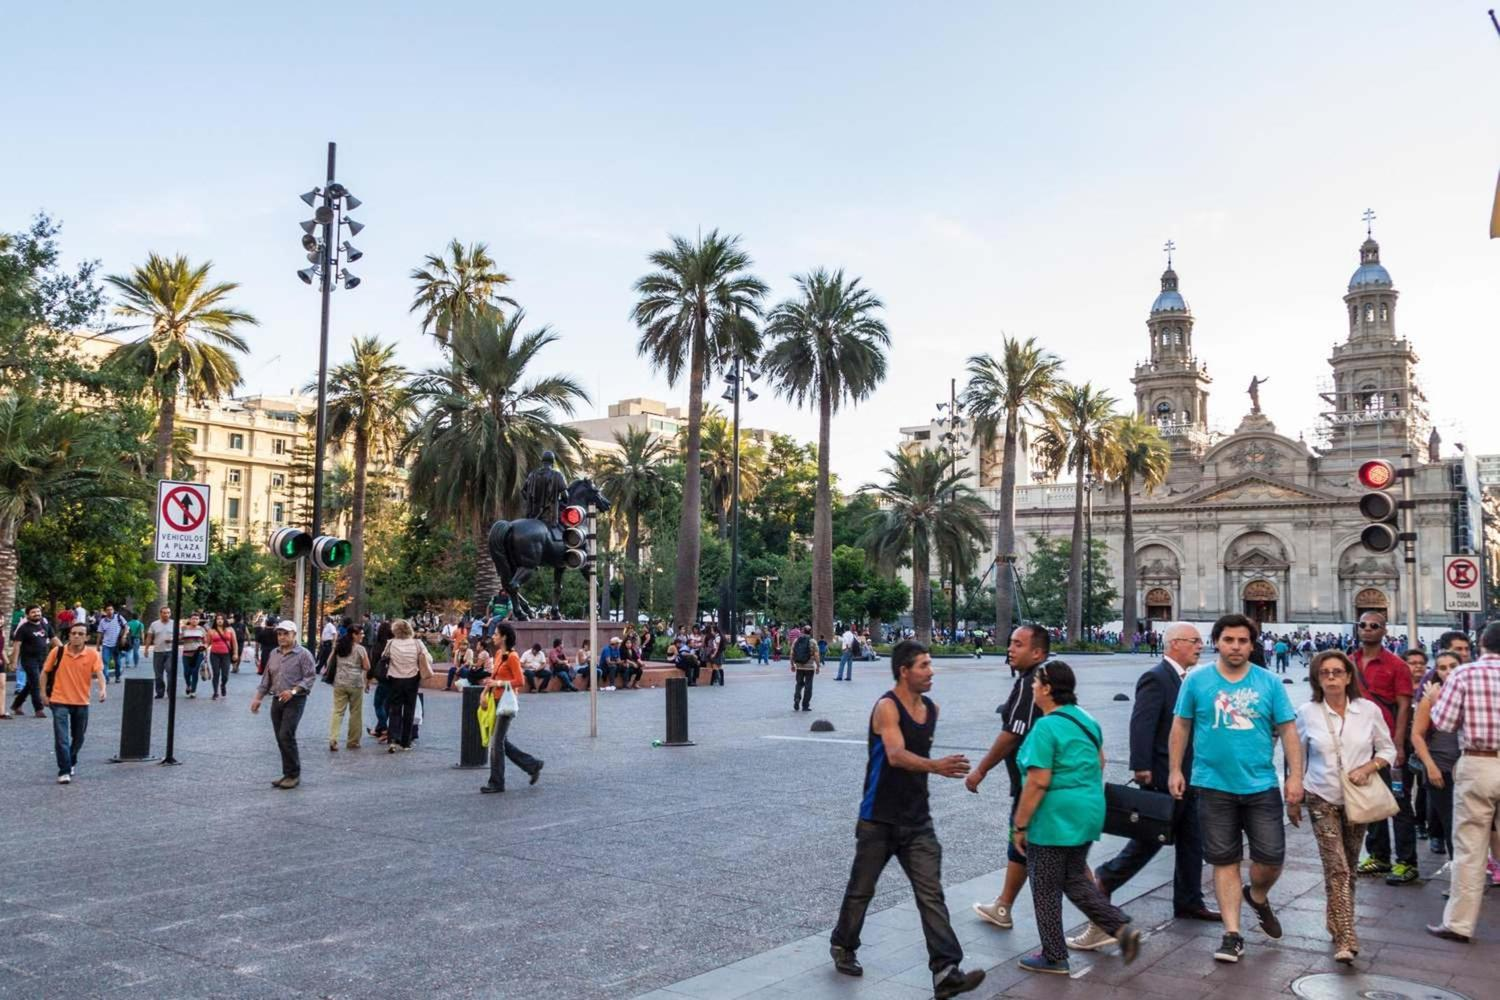 People walking at Santiago's Plaza de Armas